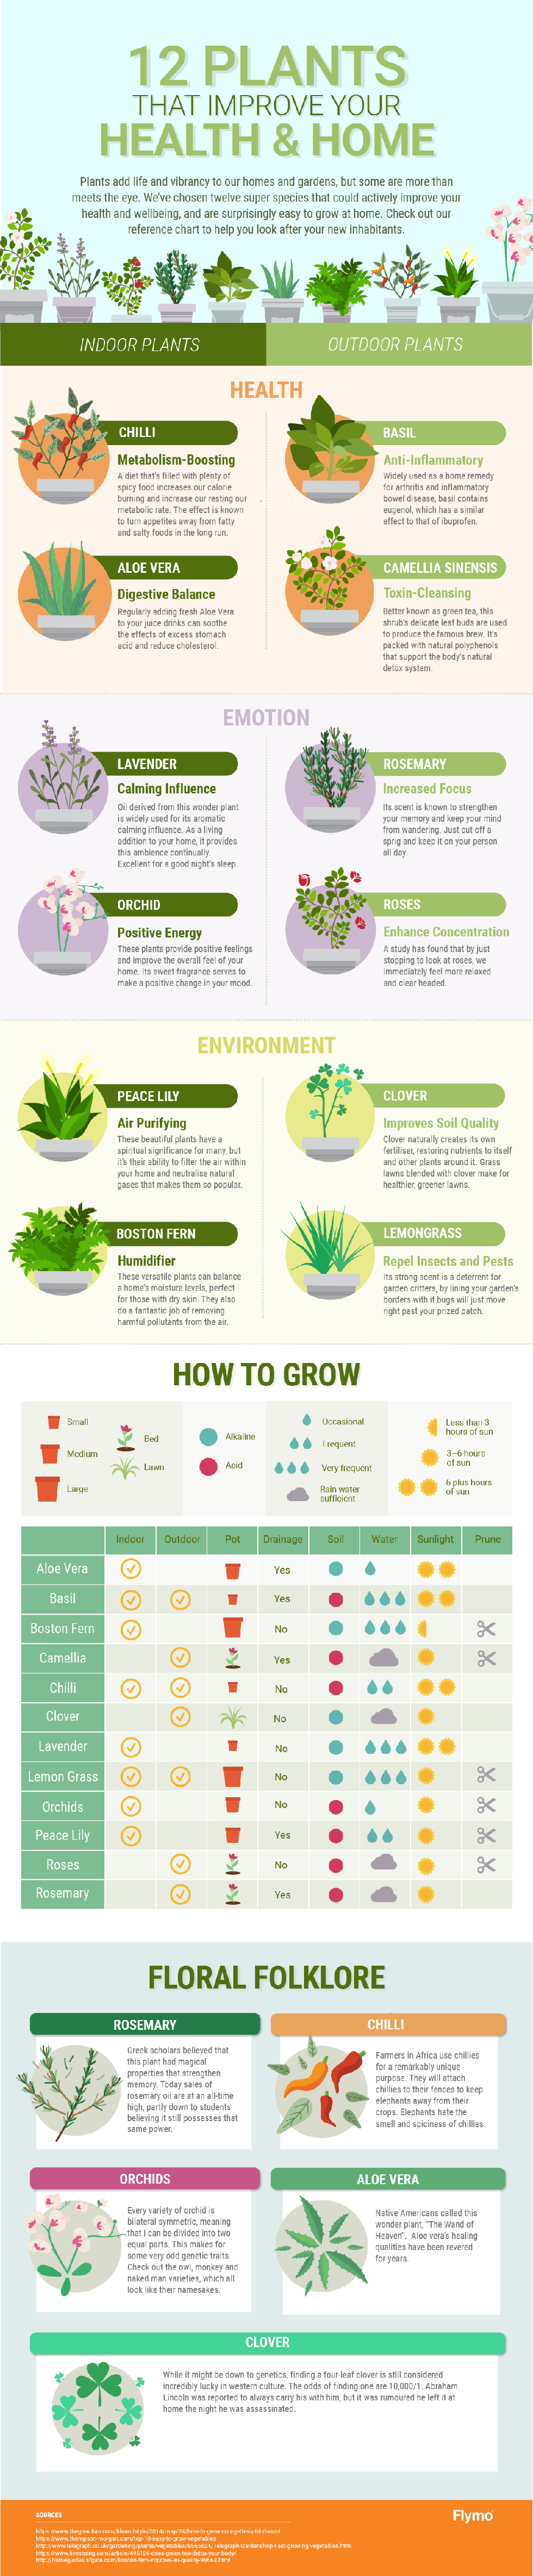 plants-that-improve-your-health-and-home-IP4453.png